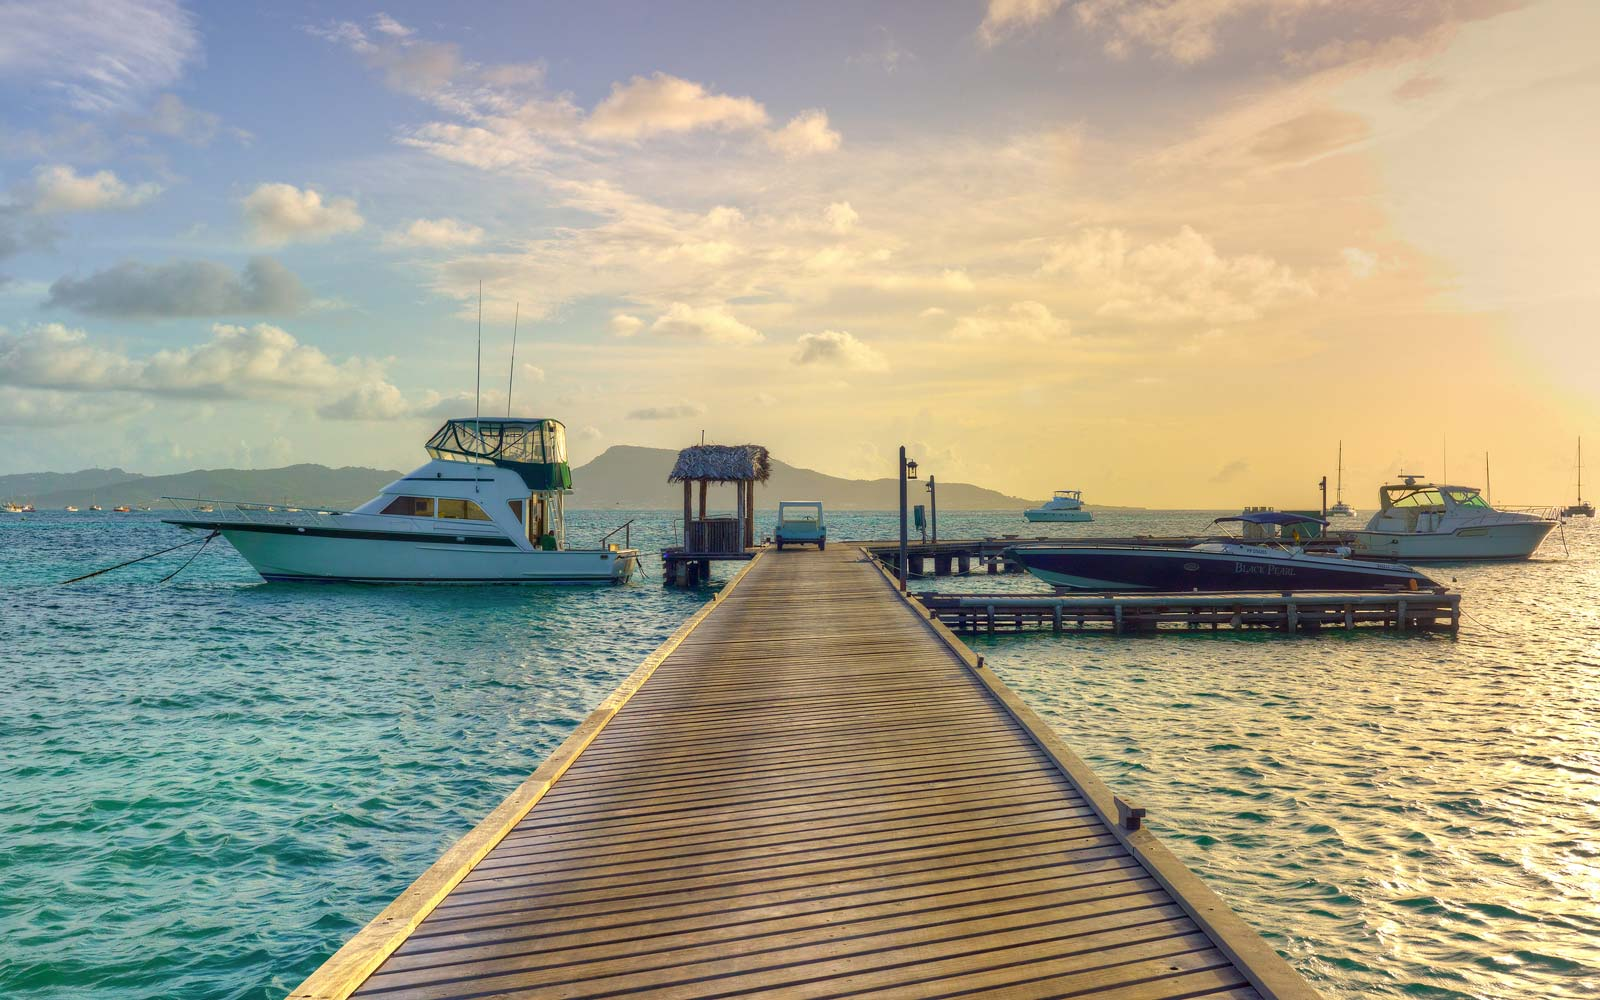 The dock at sunset at Petit St. Vincent